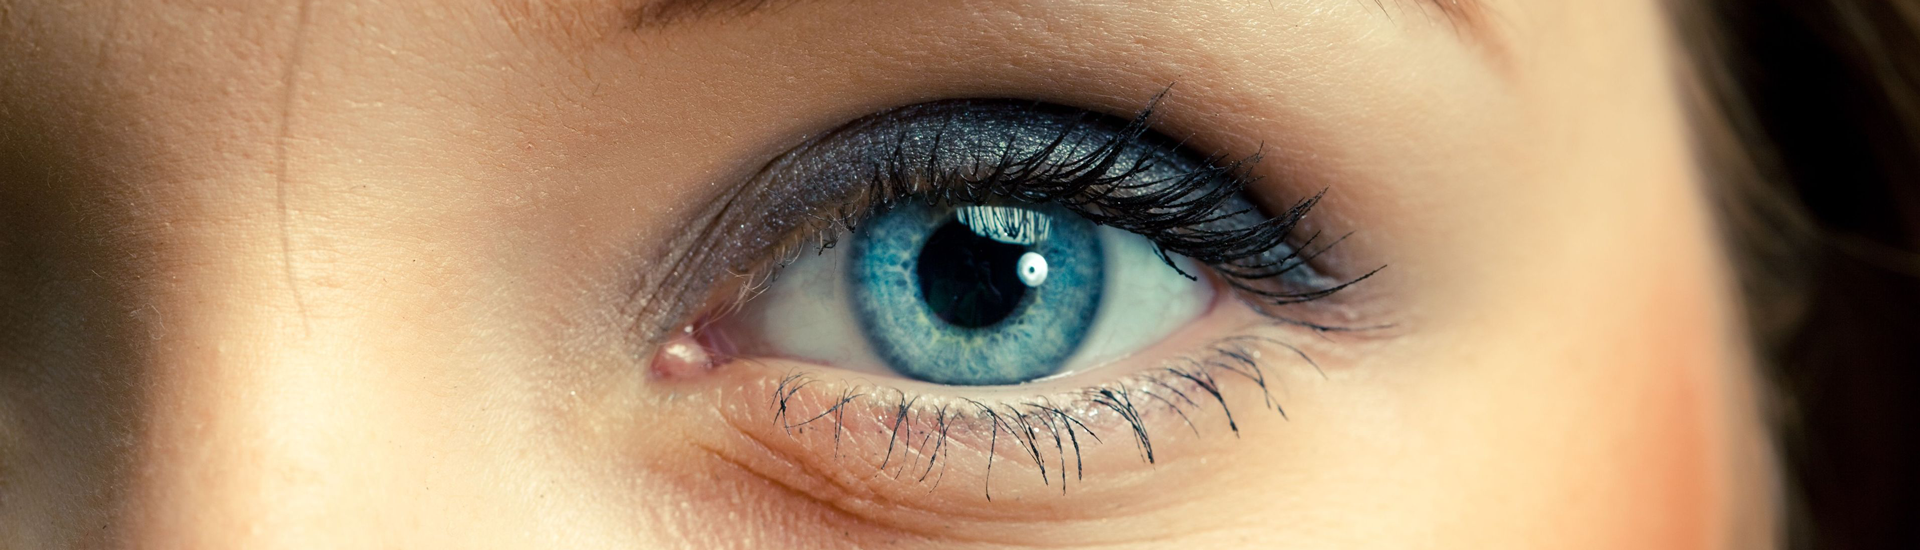 What are the most common eye injuries?